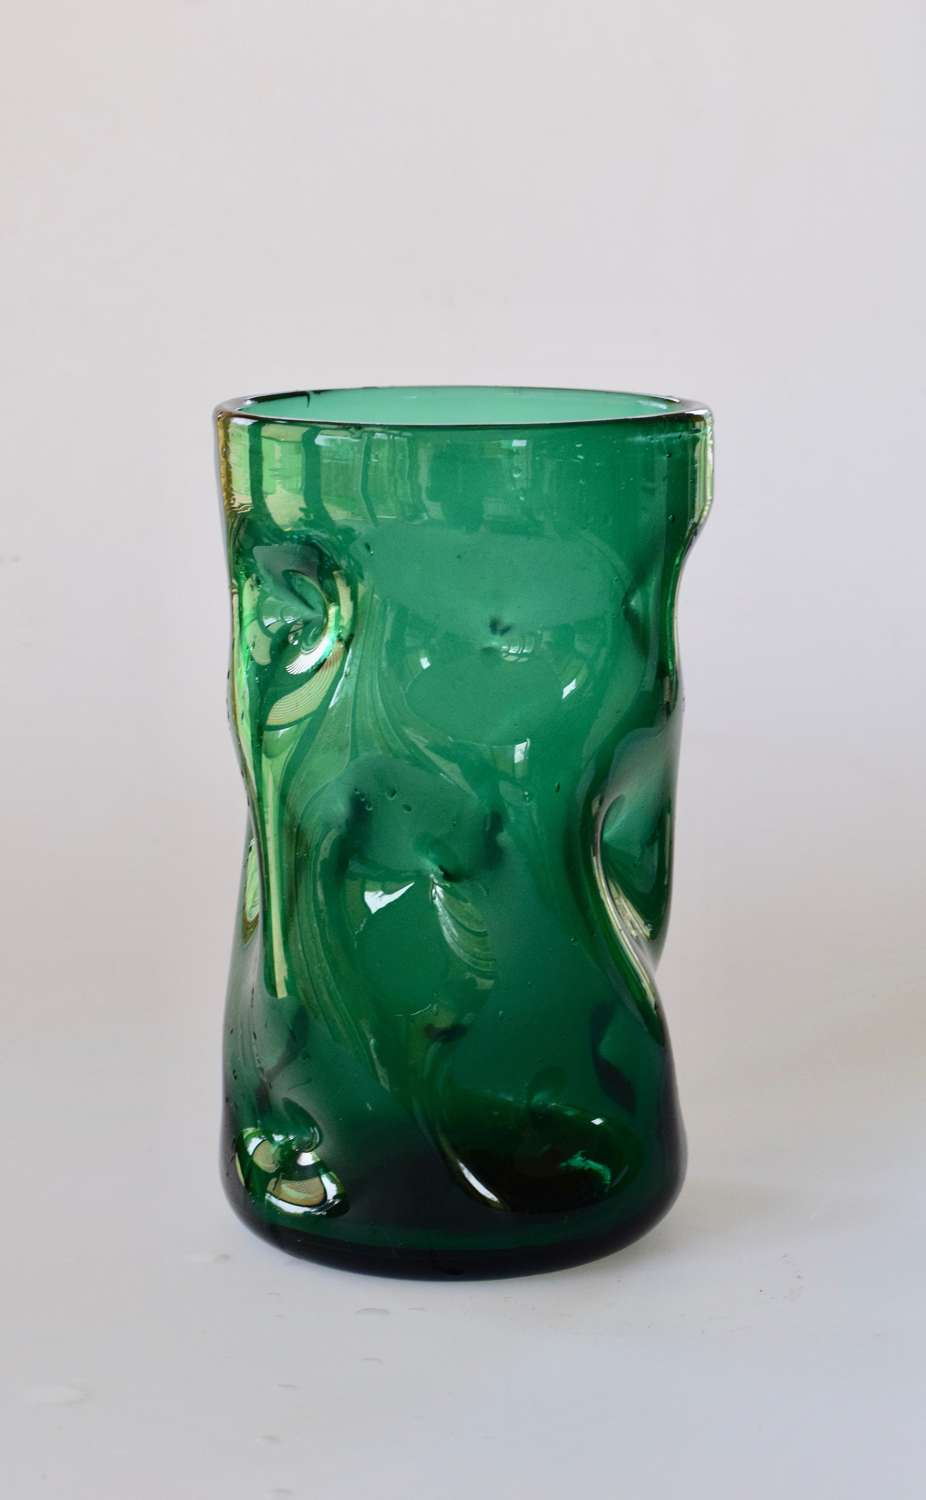 Cylindrical green dimple vase